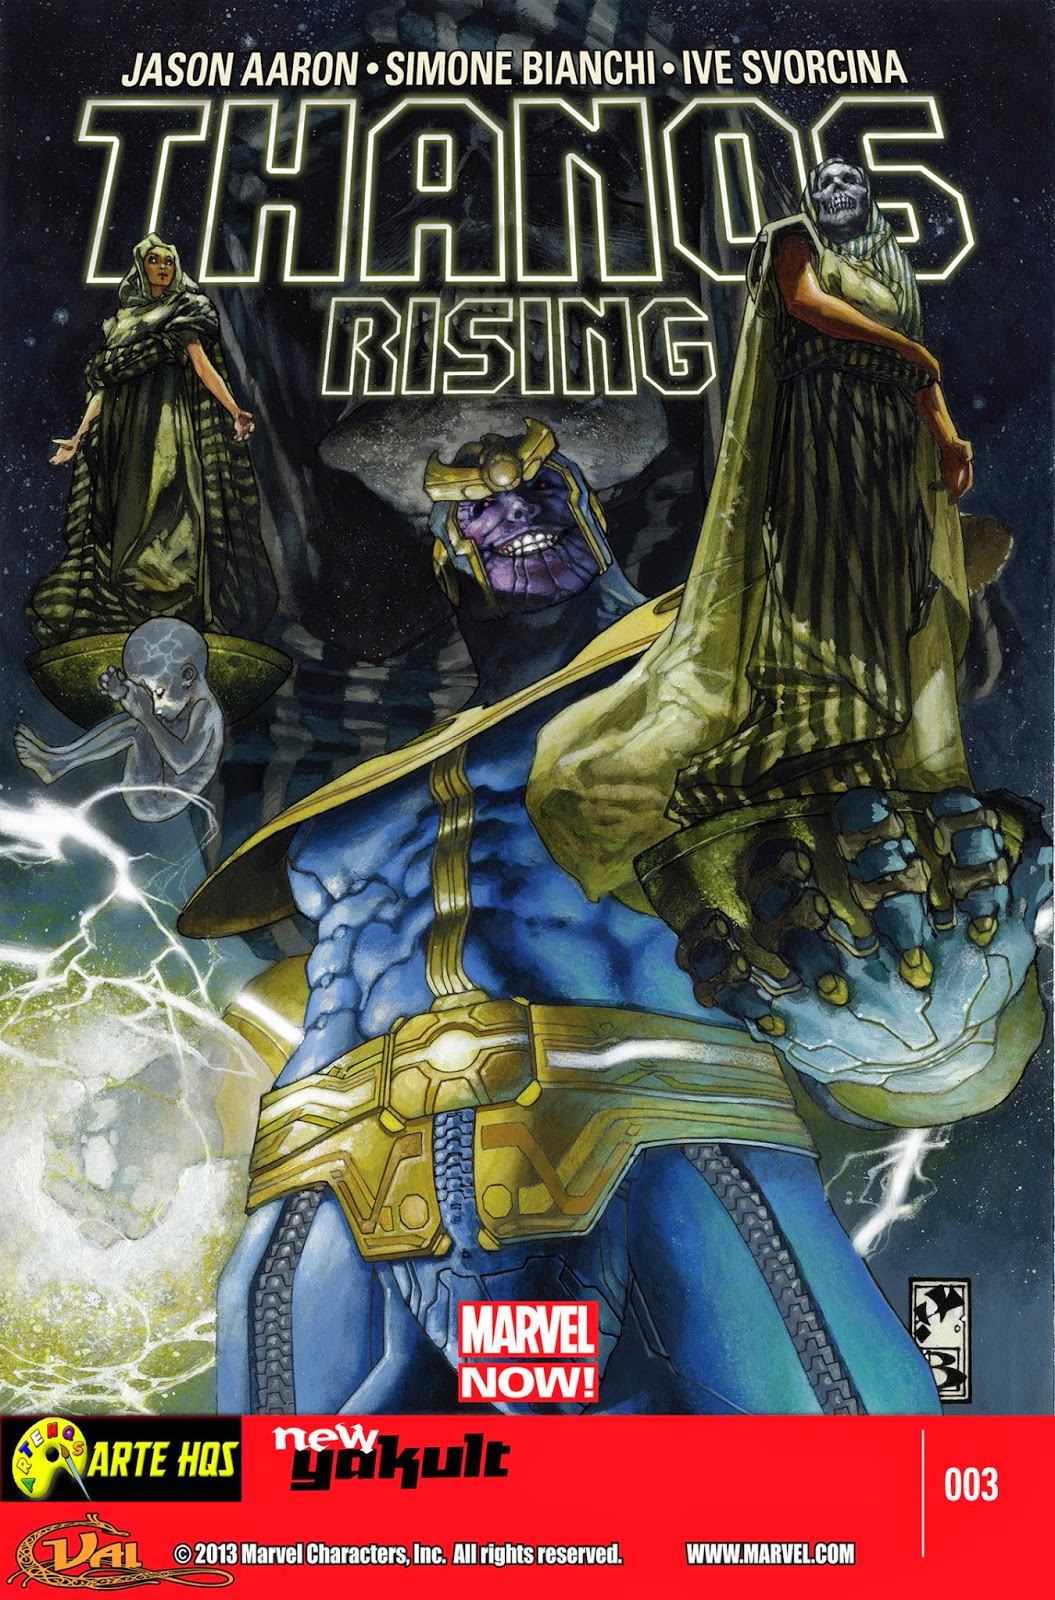 Nova Marvel! Thanos Rising #3